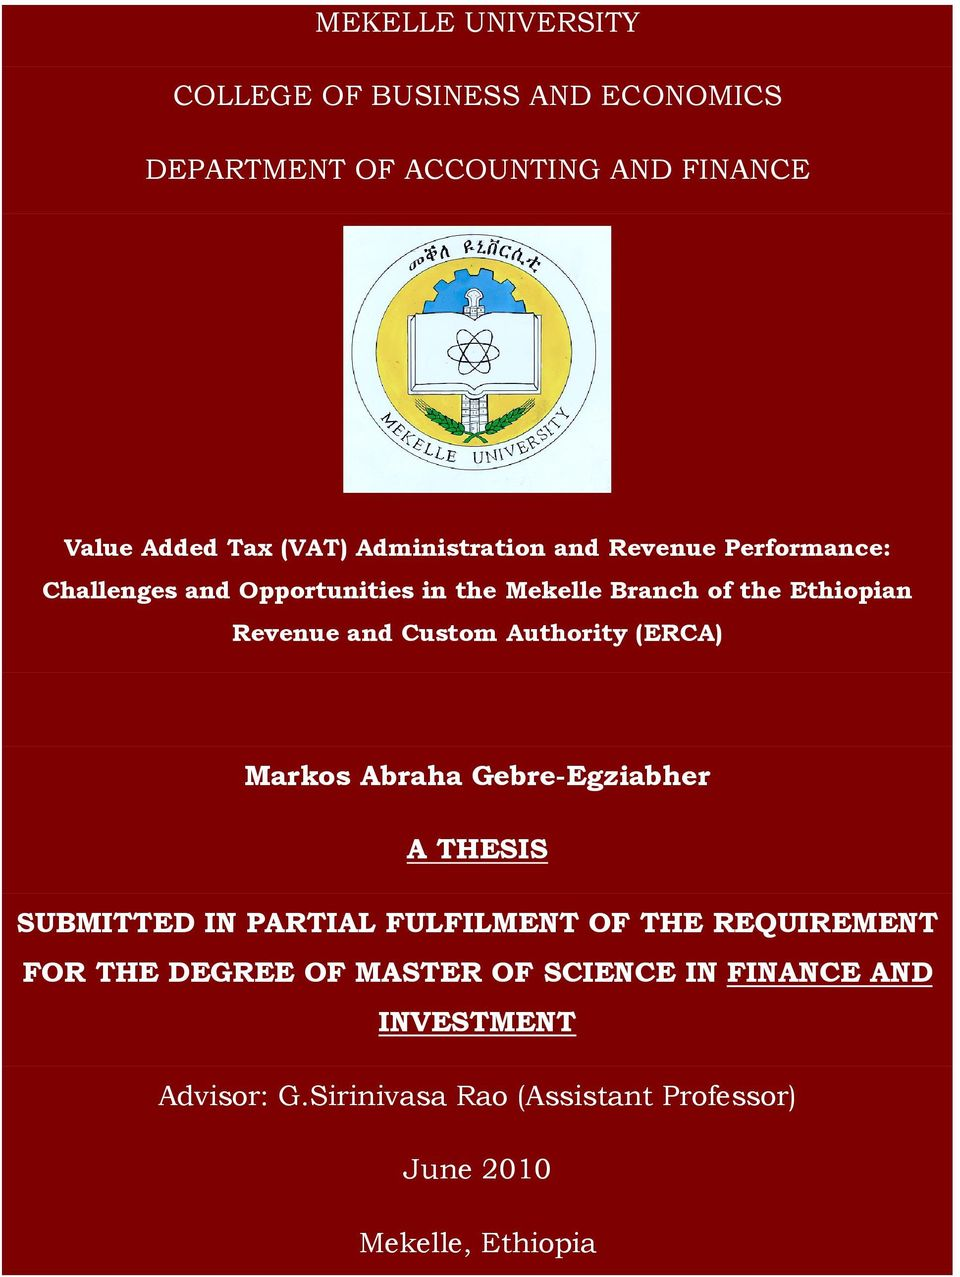 Custom Authority (ERCA) Markos Abraha Gebre-Egziabher A THESIS SUBMITTED IN PARTIAL FULFILMENT OF THE REQUIREMENT FOR